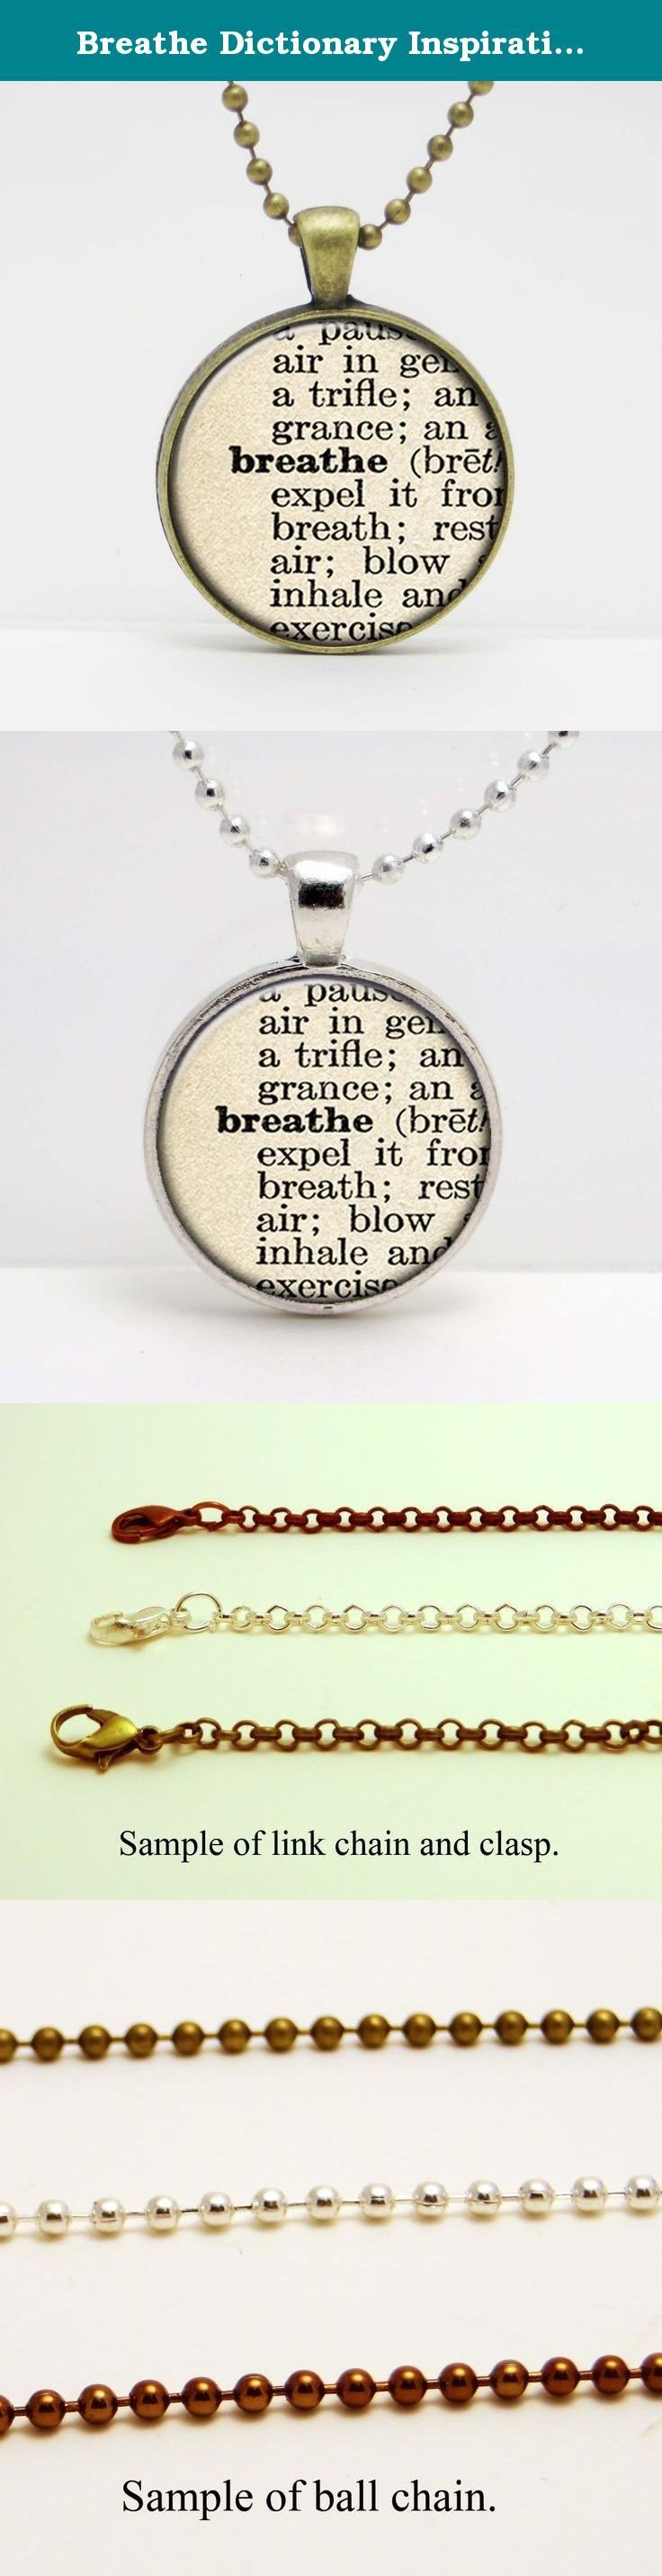 "Breathe Dictionary Inspirational Word Art Glass Pendant or Key Chain- 30 mm round- Chain Included- Made to Order. This image is set in a 30 mm bezel and comes complete with a 24"" matching chain or matching key chain. Please choose from silver, copper, or bronze for the bezel and chain color. Please choose from a link chain, ball chain or key chain. This listing is for the glass art pendant and 24"" chain, or pendant and key chain. My glass art pendants are handcrafted using a high quality..."